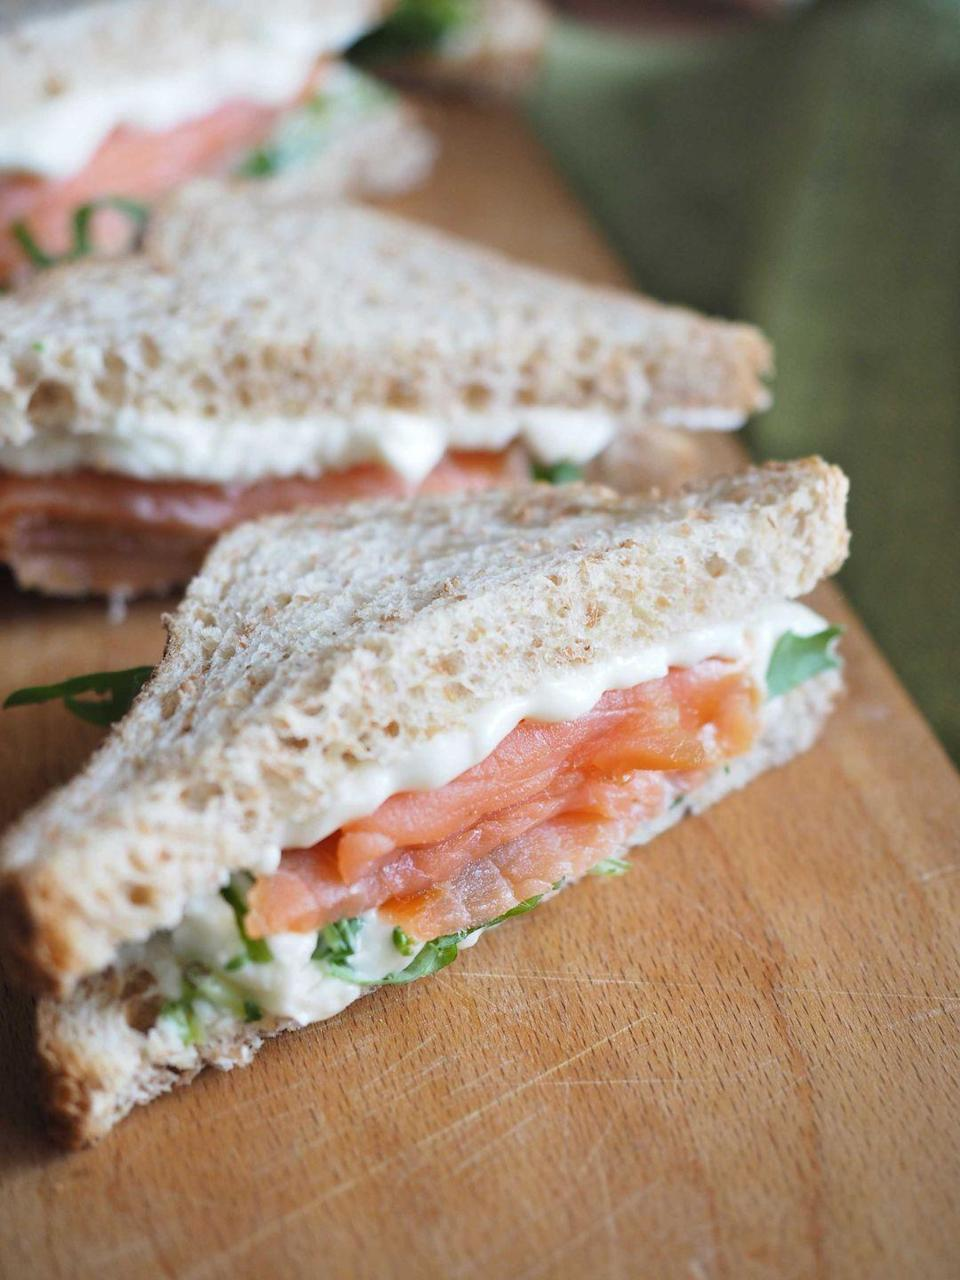 """<p><strong>Smoked Salmon Sandwich</strong></p><p>The Smoked Salmon Sandwich on wheat became Washington's official sandwich in 1987. But lawmakers say, the condiments are your choice. A great dish at <a href=""""https://www.pikeplacechowder.com/"""" rel=""""nofollow noopener"""" target=""""_blank"""" data-ylk=""""slk:Pike Place Chowder"""" class=""""link rapid-noclick-resp"""">Pike Place Chowder</a> to eat for breakfast or lunch we recommend to top your sandwich with capers. </p>"""